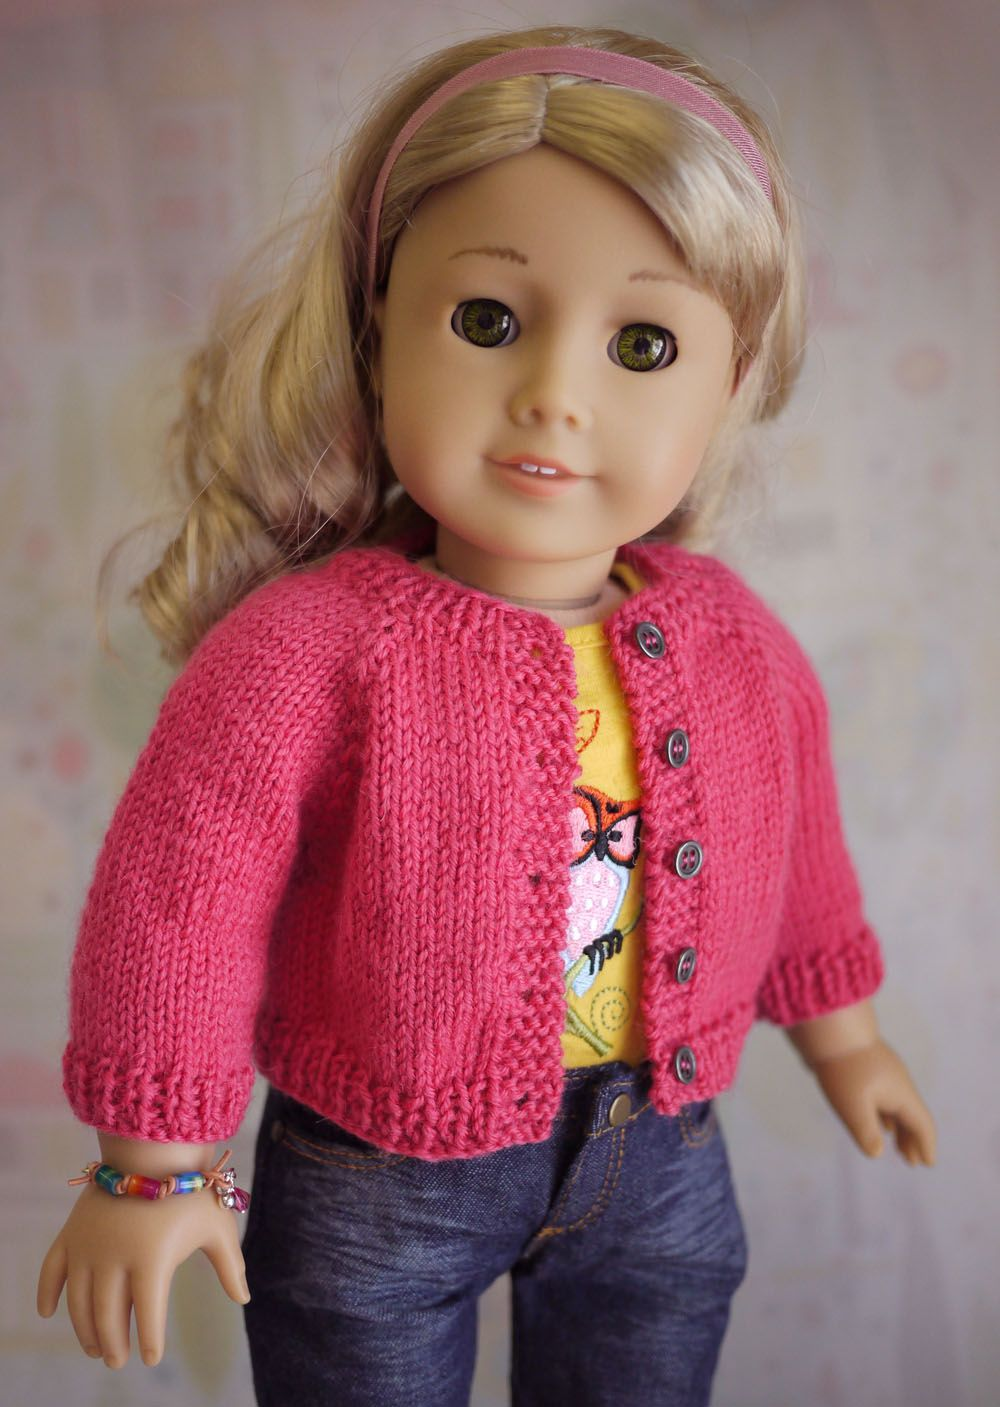 Free patterns free pattern american girls and rice free patterns bankloansurffo Image collections